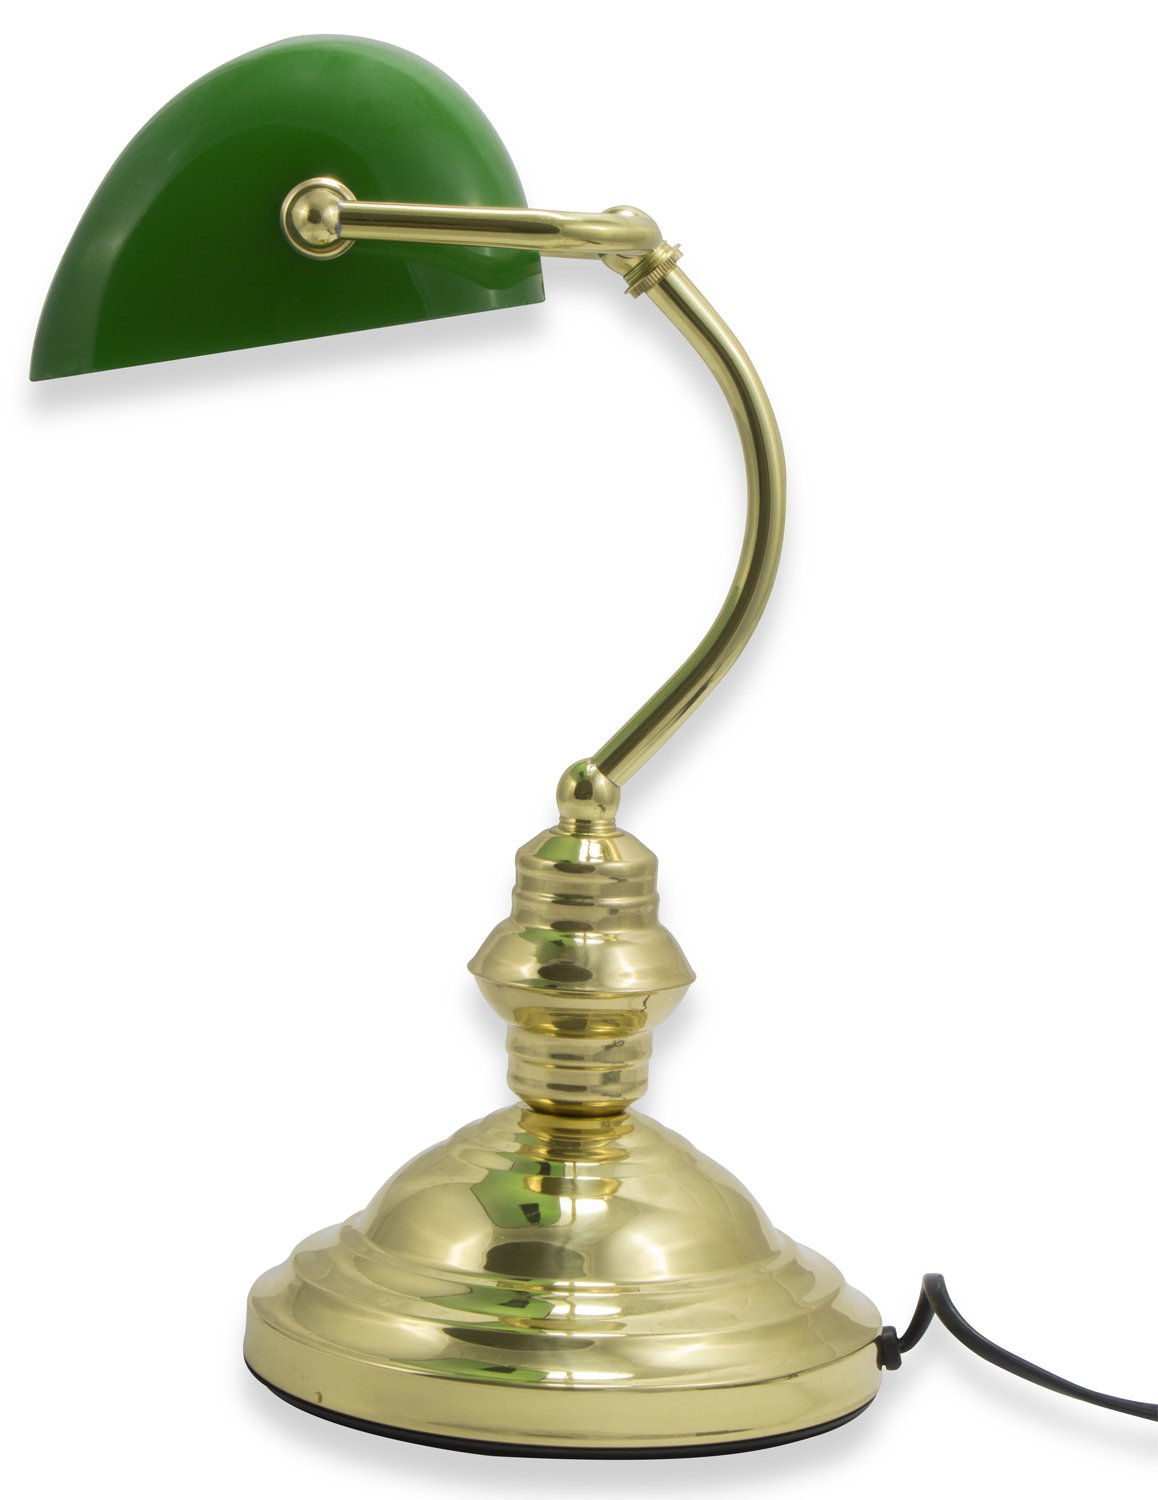 Hausen 60W Classic Bankers Desk Lamp Polished Brass with Green Glass Swivel Head